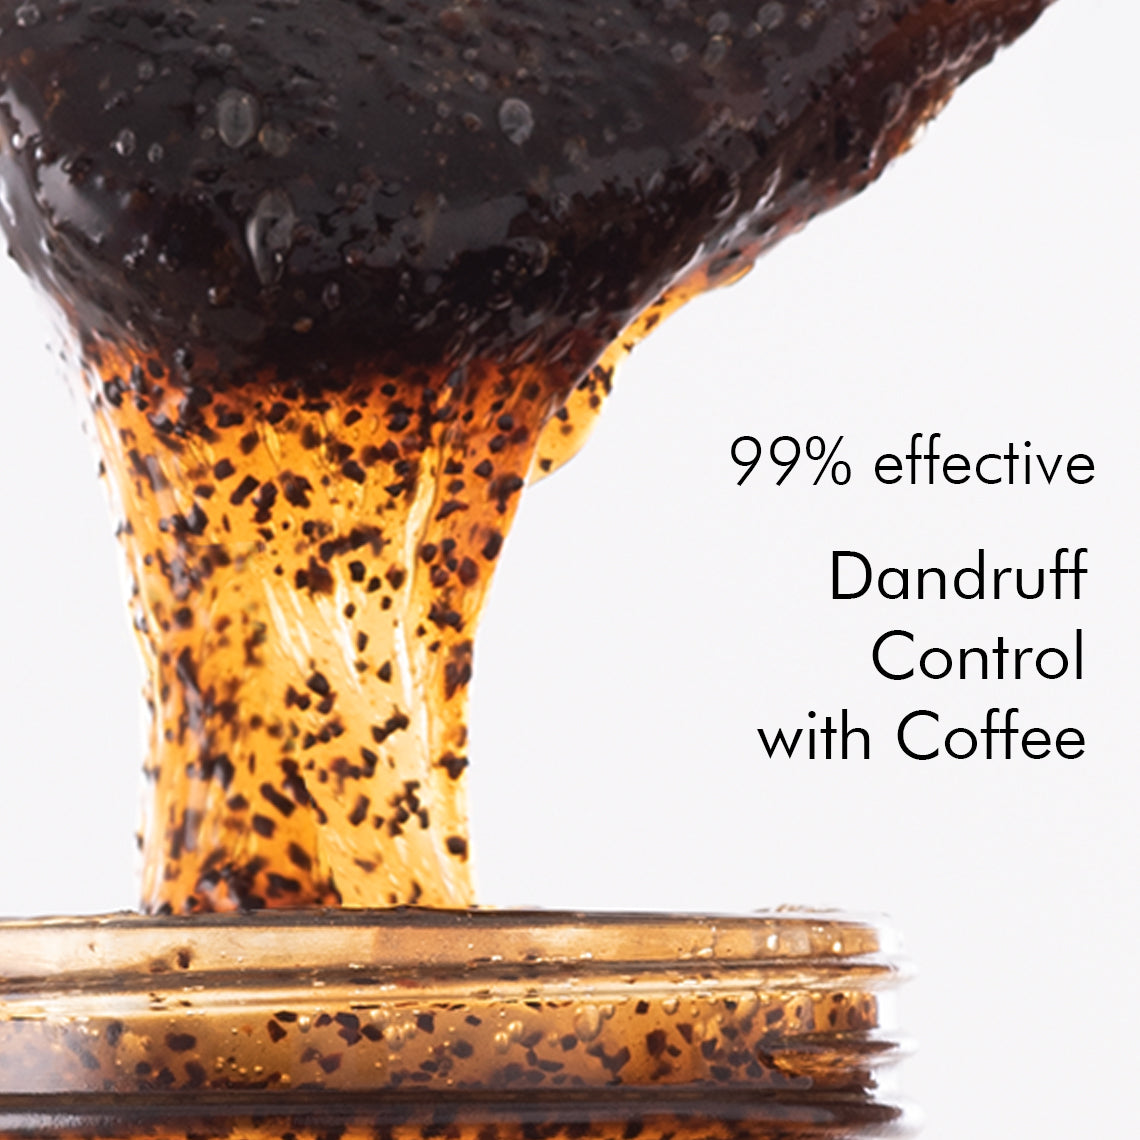 Coffee For Dandruff? Here's all that you need to know!